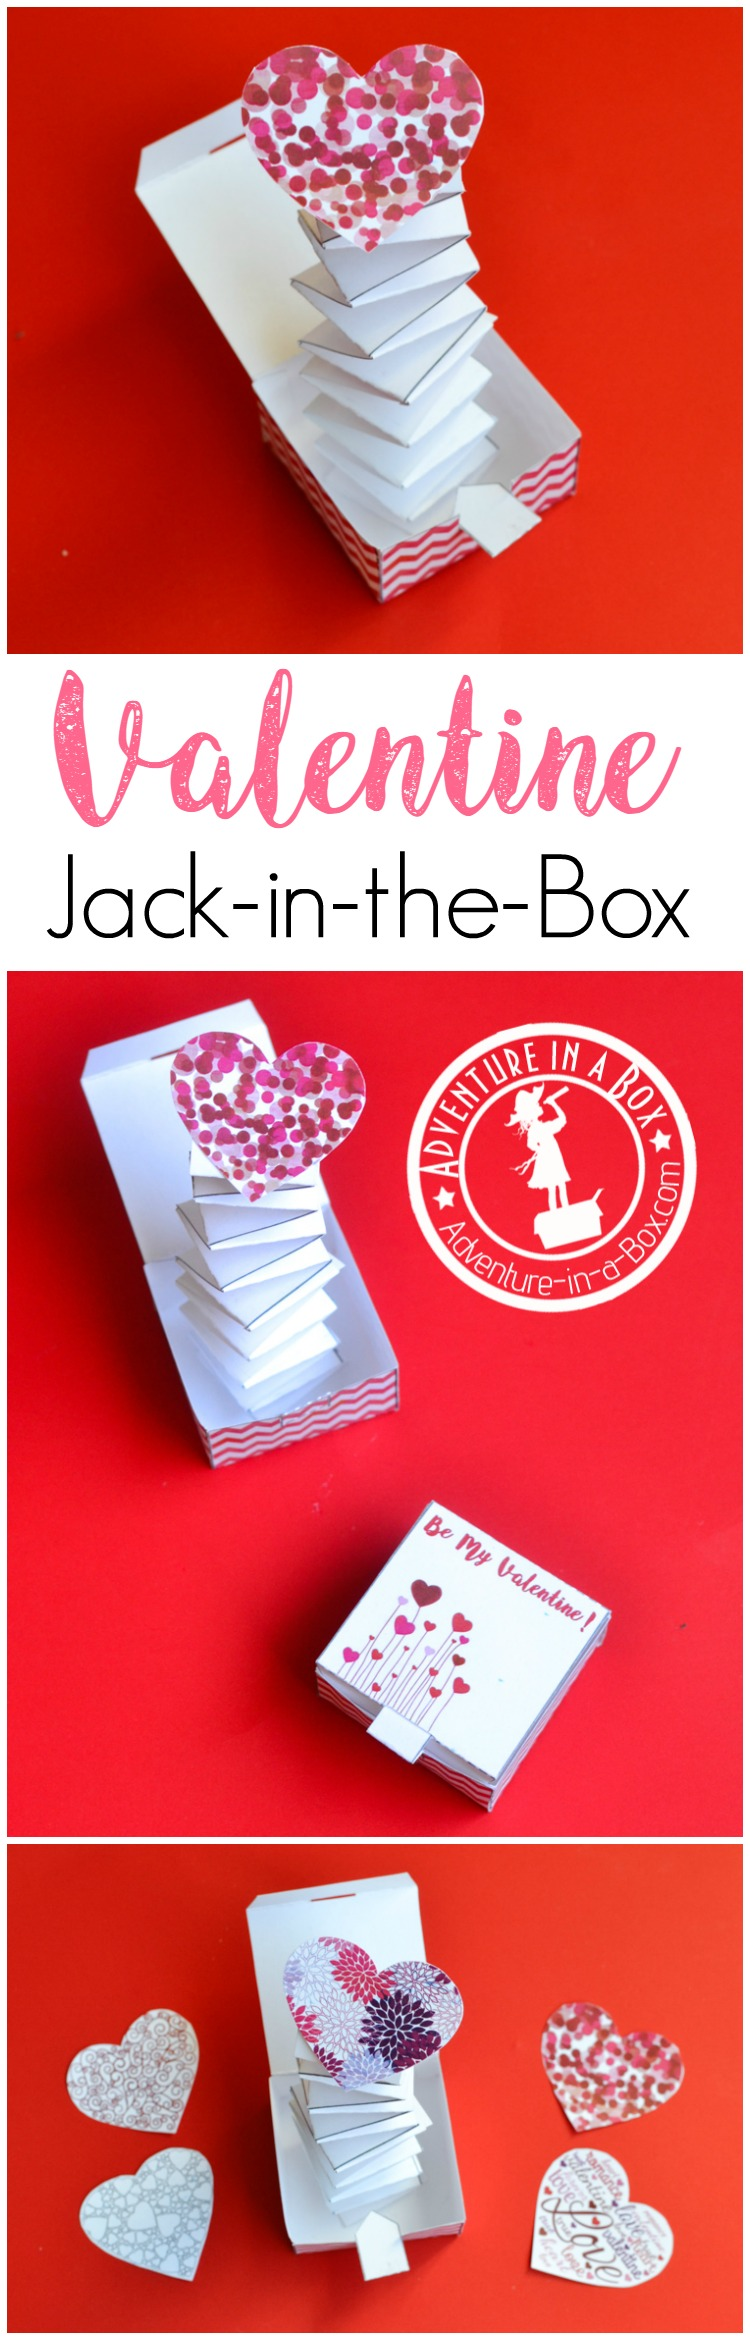 This Valentine's Day, give someone a handmade Jack in the Box with a throbbing heart inside! A simple and fun Valentine STEM craft for kids.